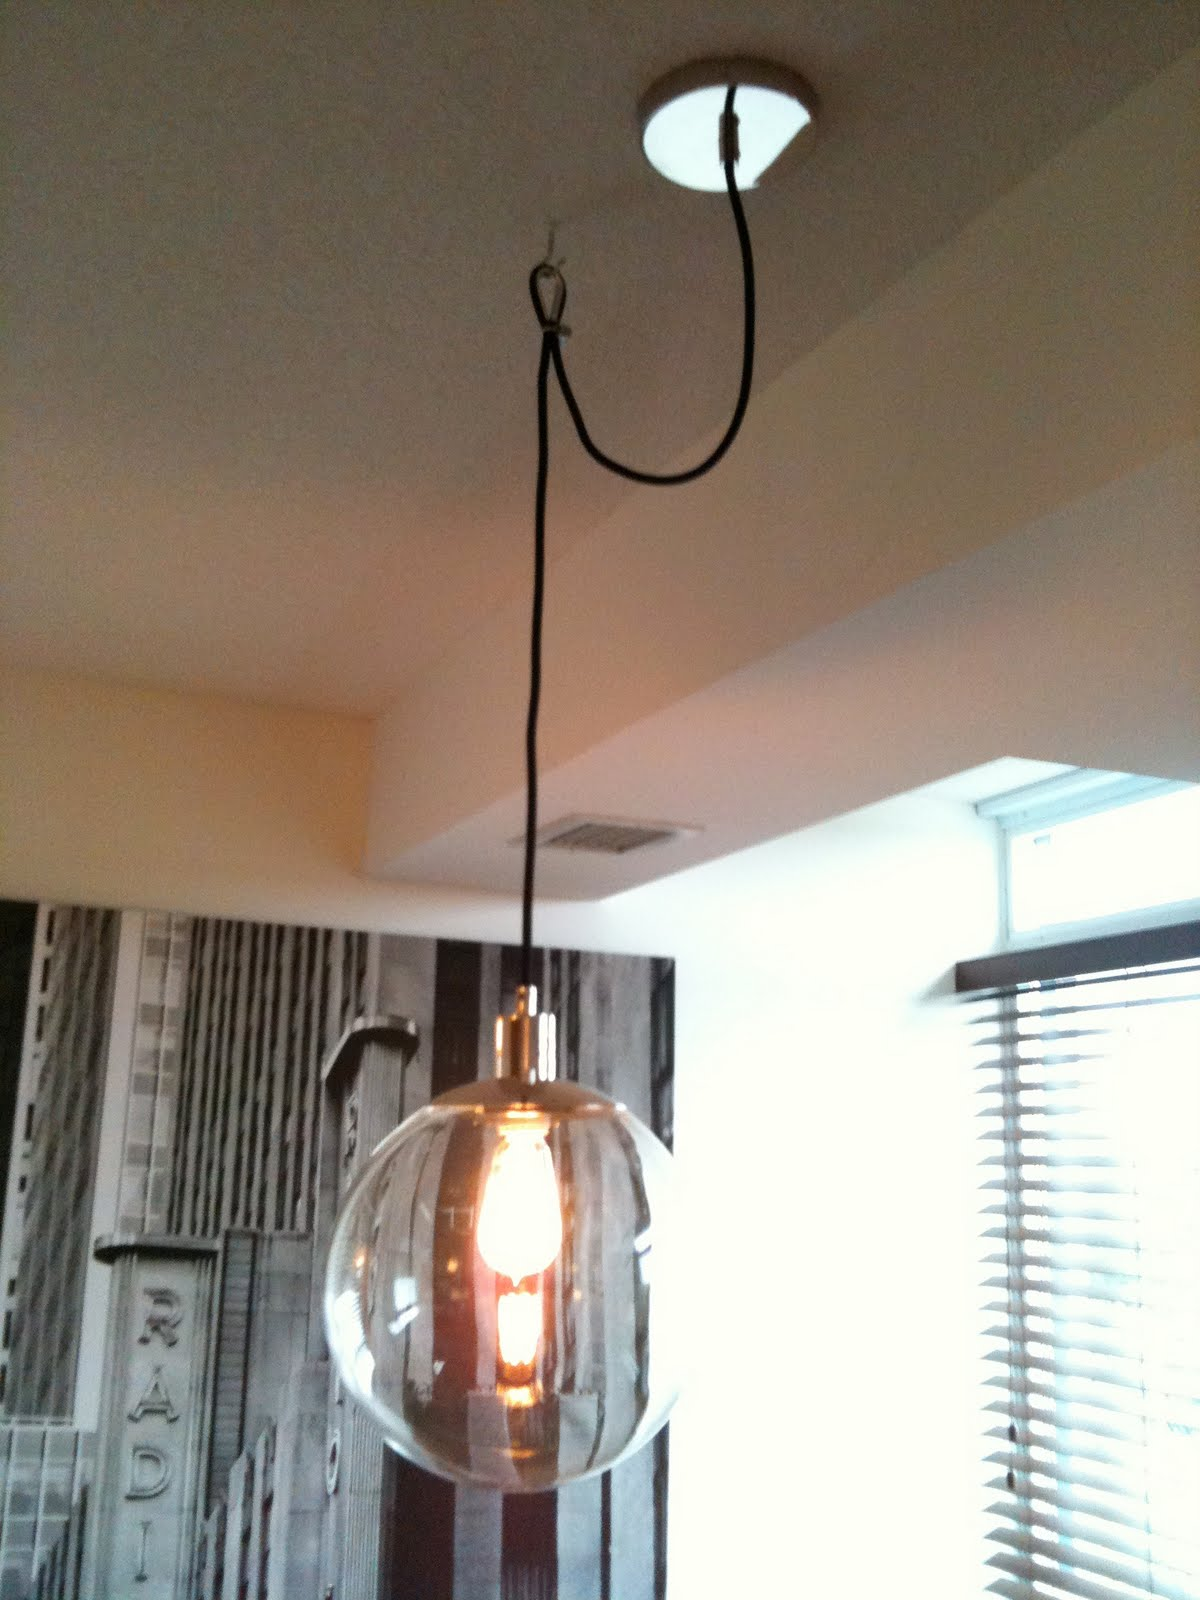 Install Pendant Light Ceiling Light Hooks Making Your Installation Super Easy